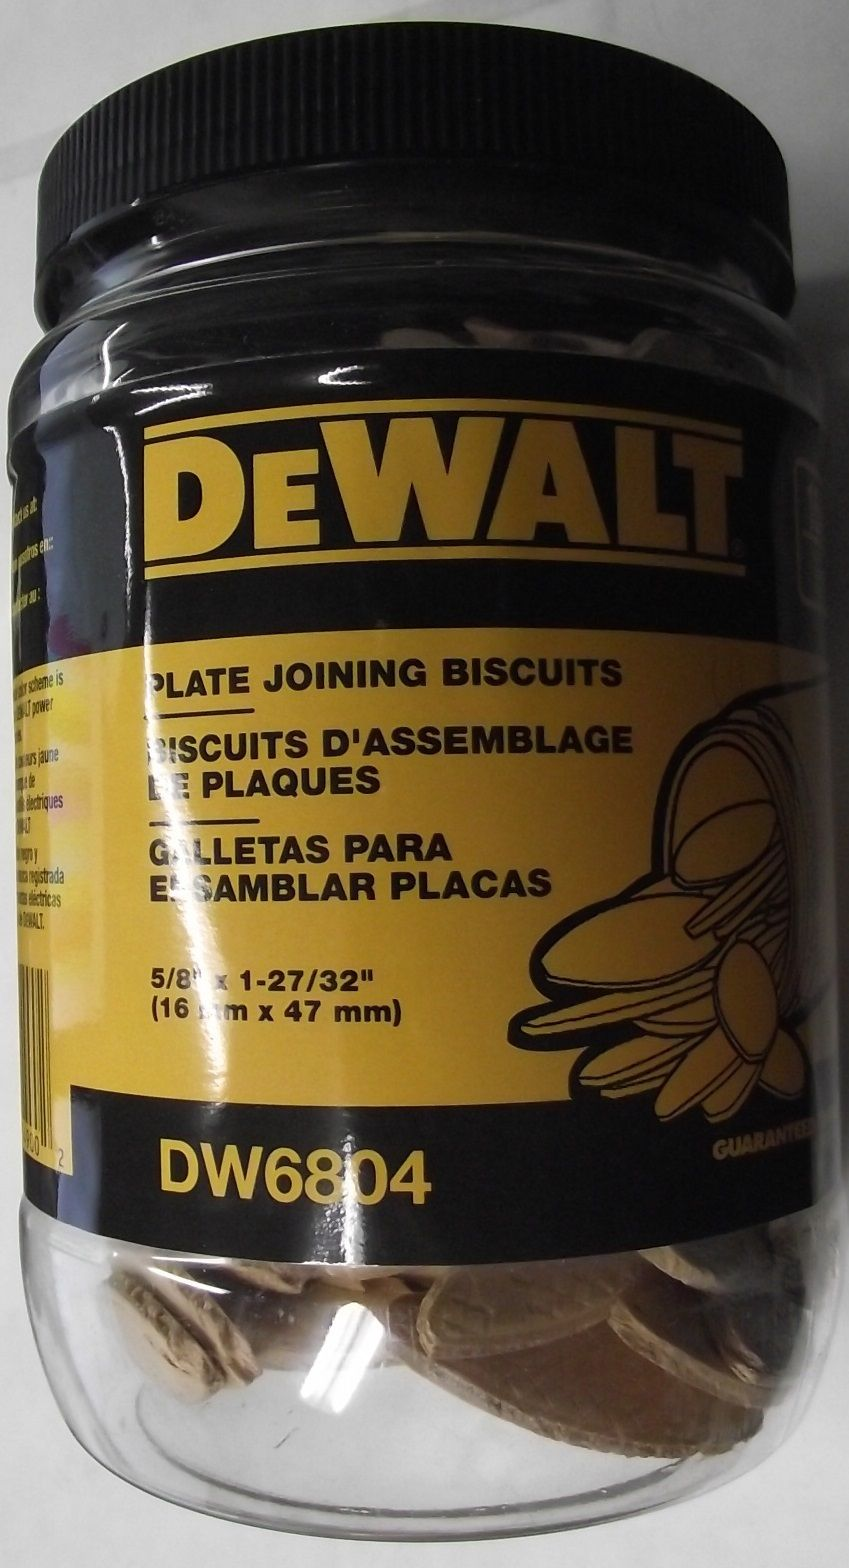 Dewalt DW6804 Plate Joiner Biscuits Size 0 150 Pack USA